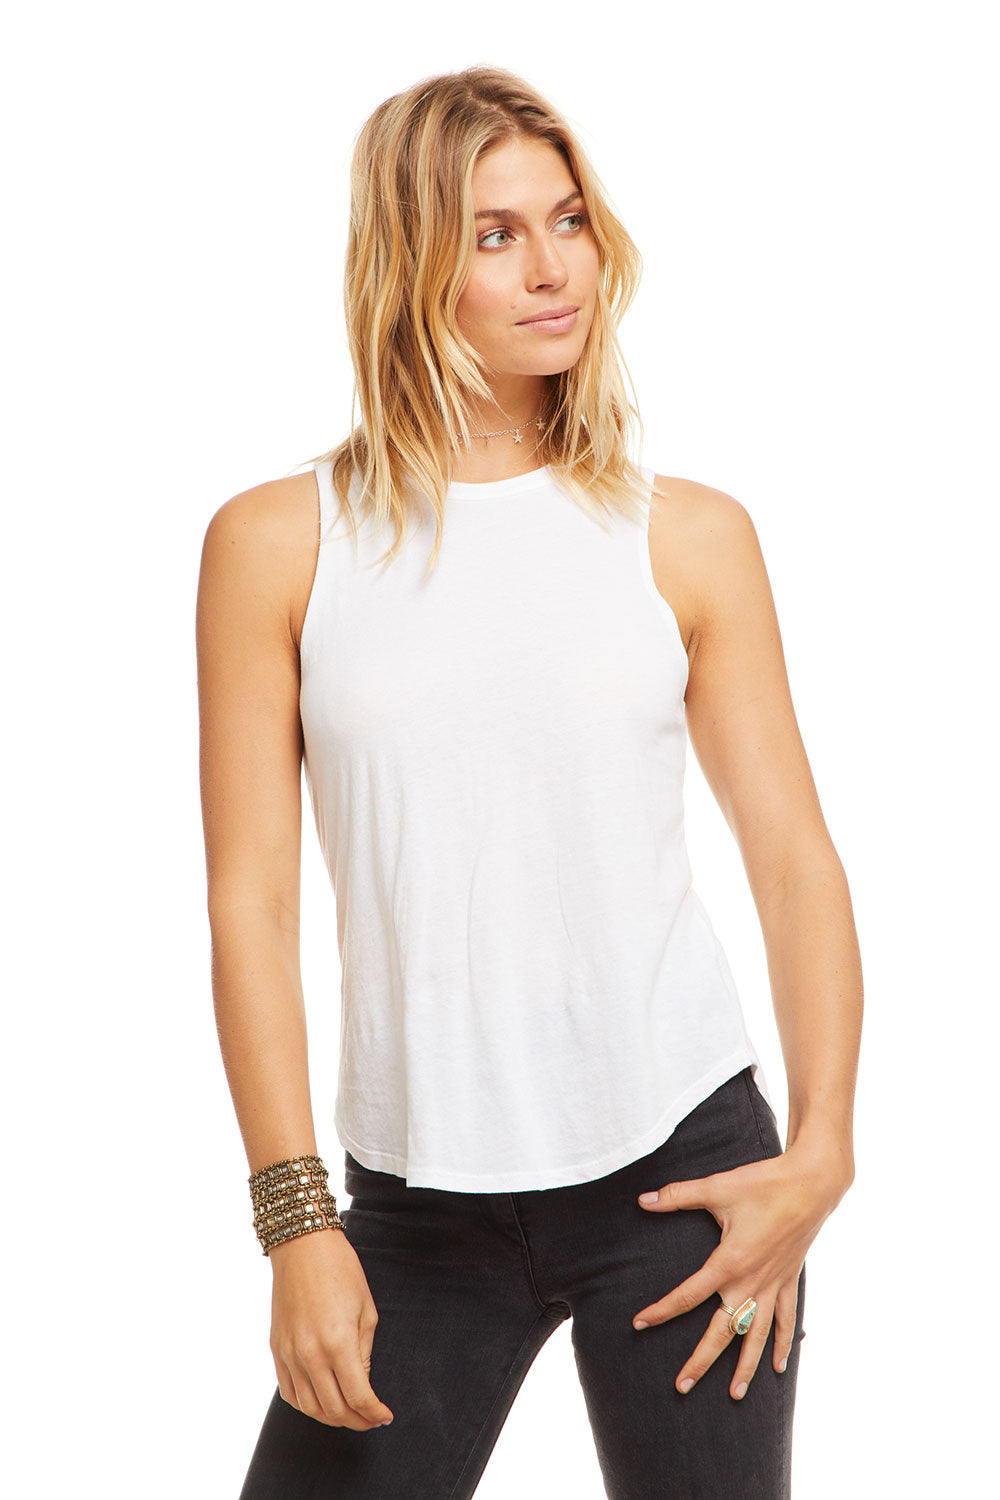 Cotton Basic Seamed Shirttail Muscle Tank WOMENS chaserbrand4.myshopify.com